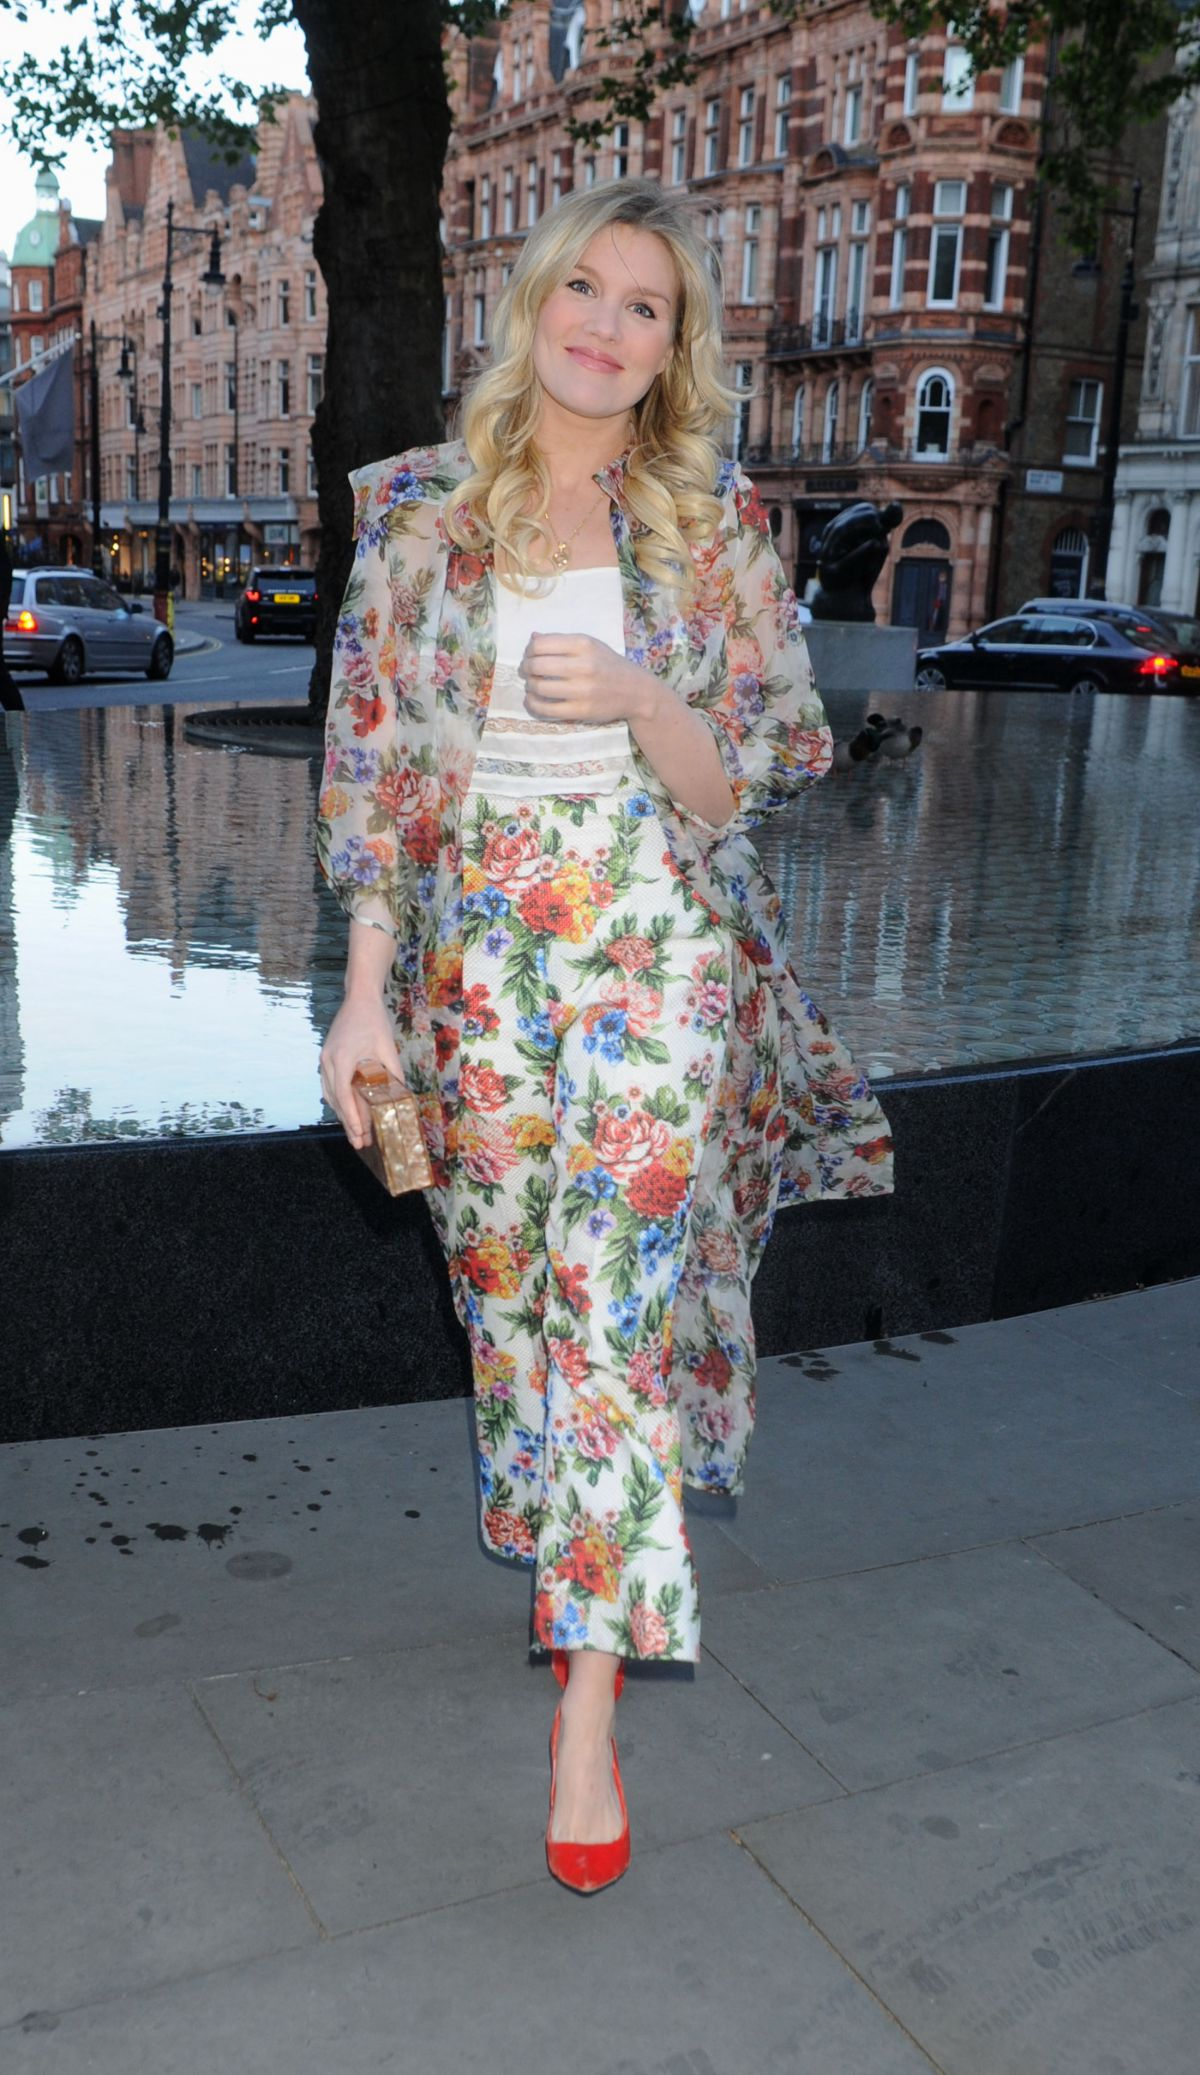 EMERALD FENNELL at Alice x FrenchSoles Dinner Party in London 04/25/2017